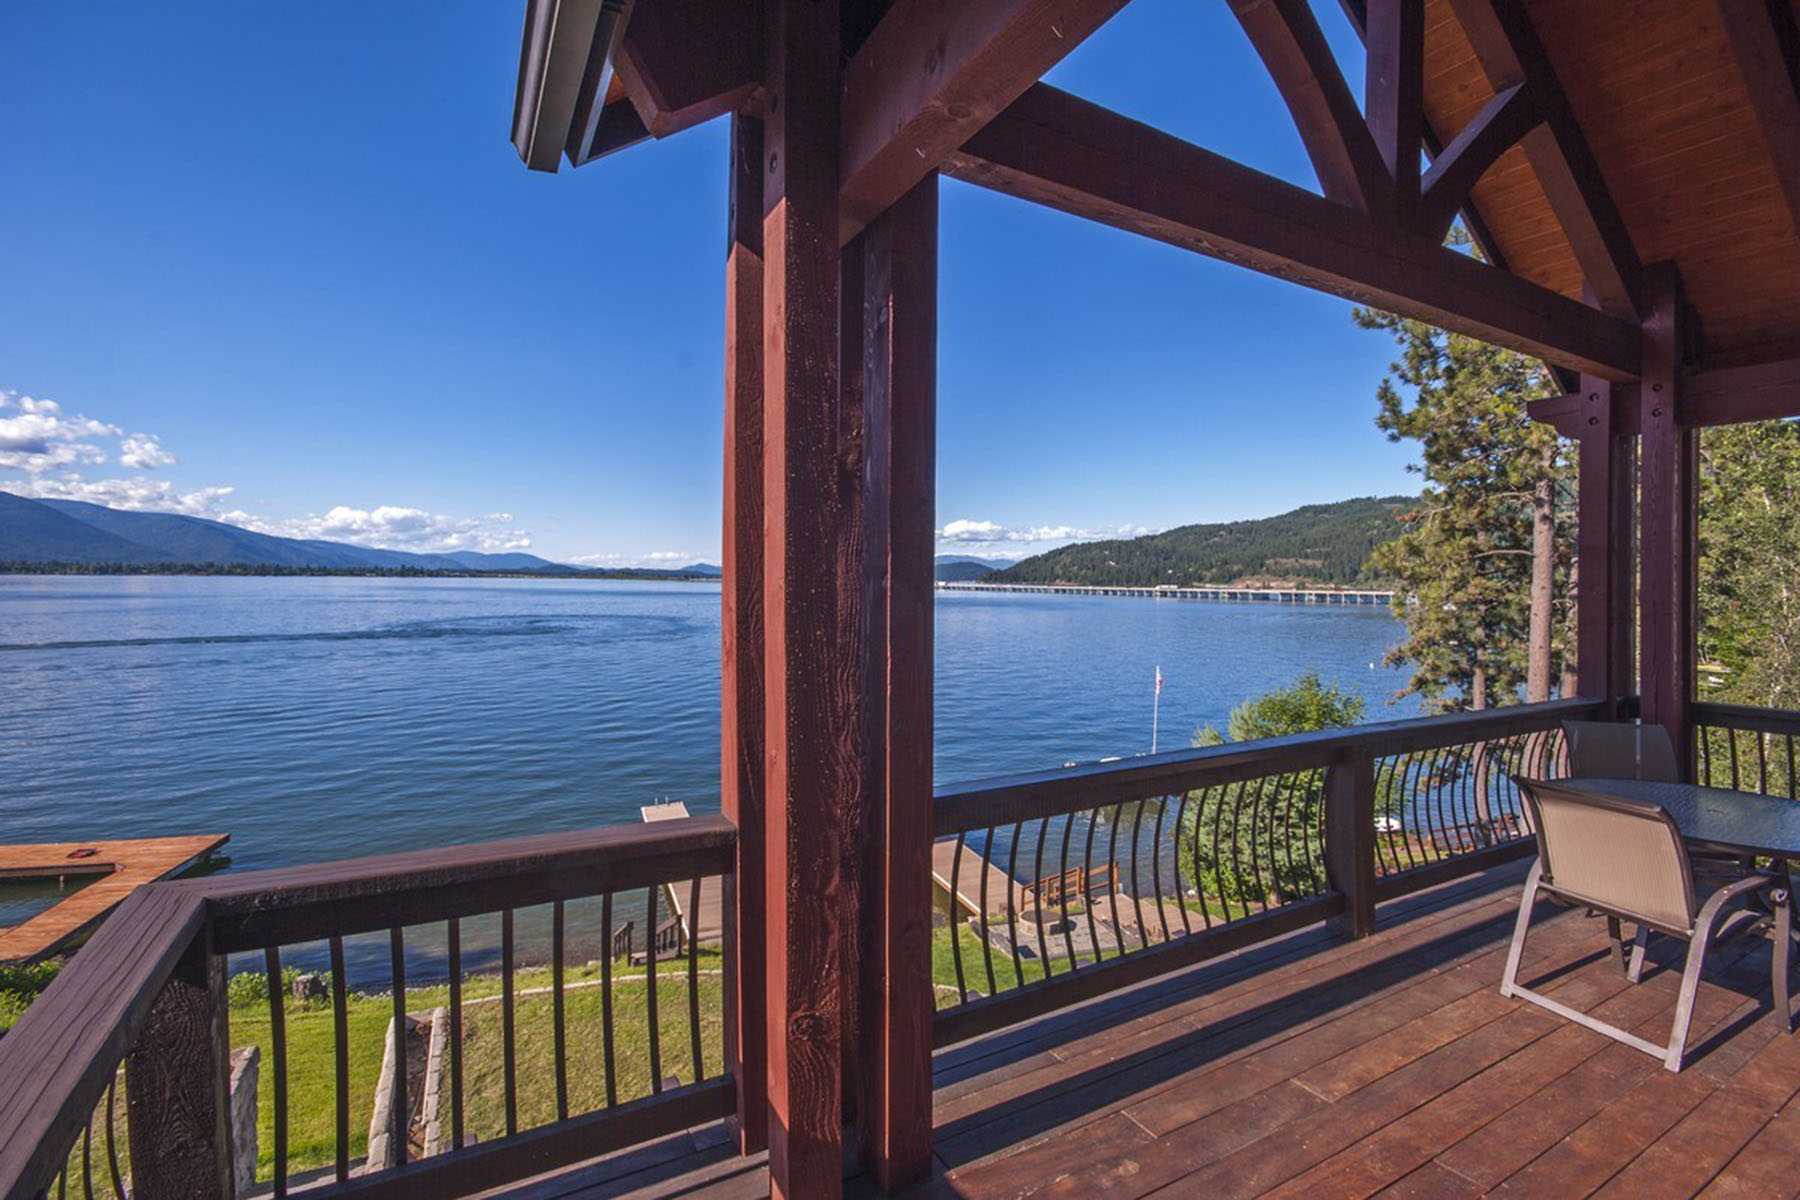 Single Family Home for Sale at Lakeshore Custom Home with Dock 357 Lakeshore Dr Sandpoint, Idaho 83864 United States